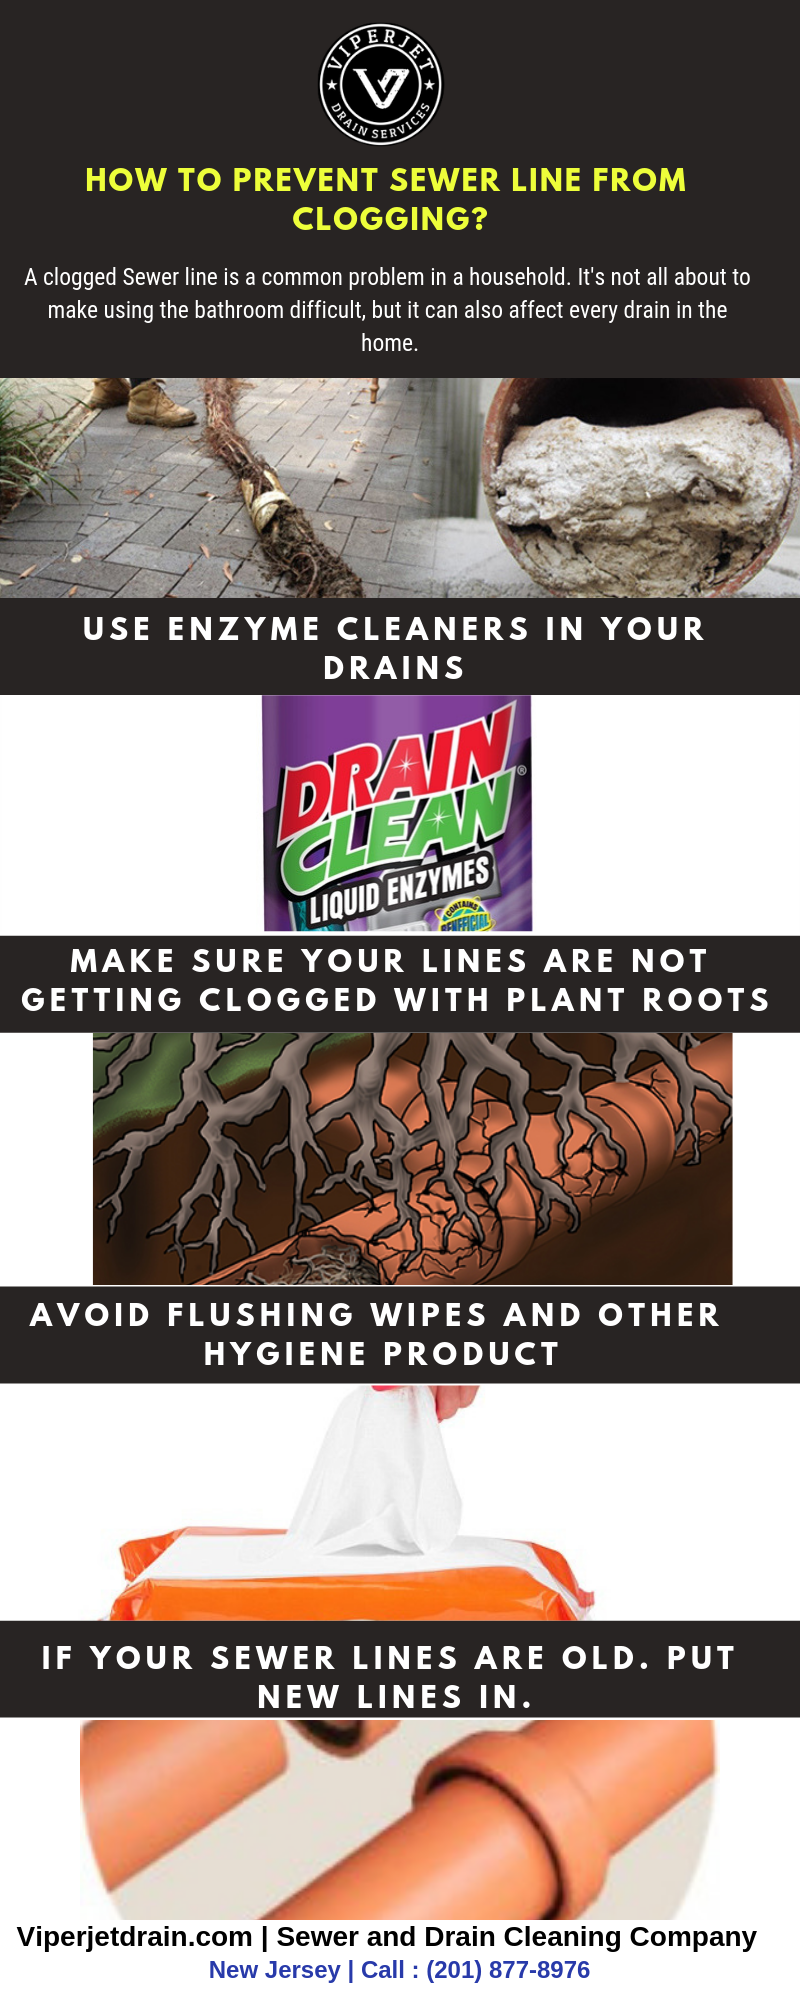 How to prevent sewer line from clogging?